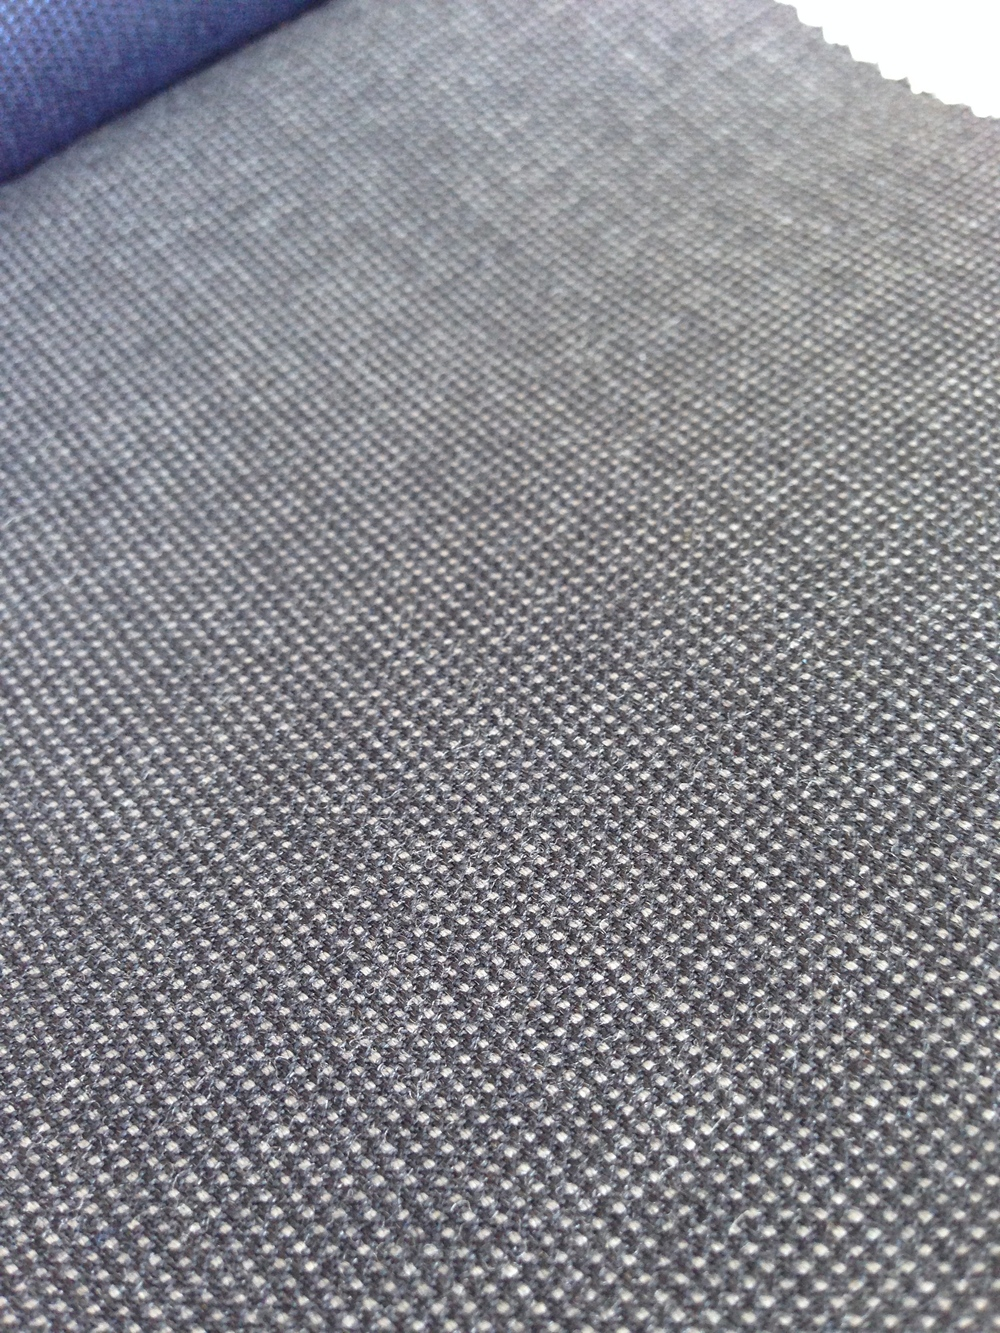 Often confused with nailhead, this pindot is a true chameleon, changing from mid-grey in sun to almost charcoal by night.